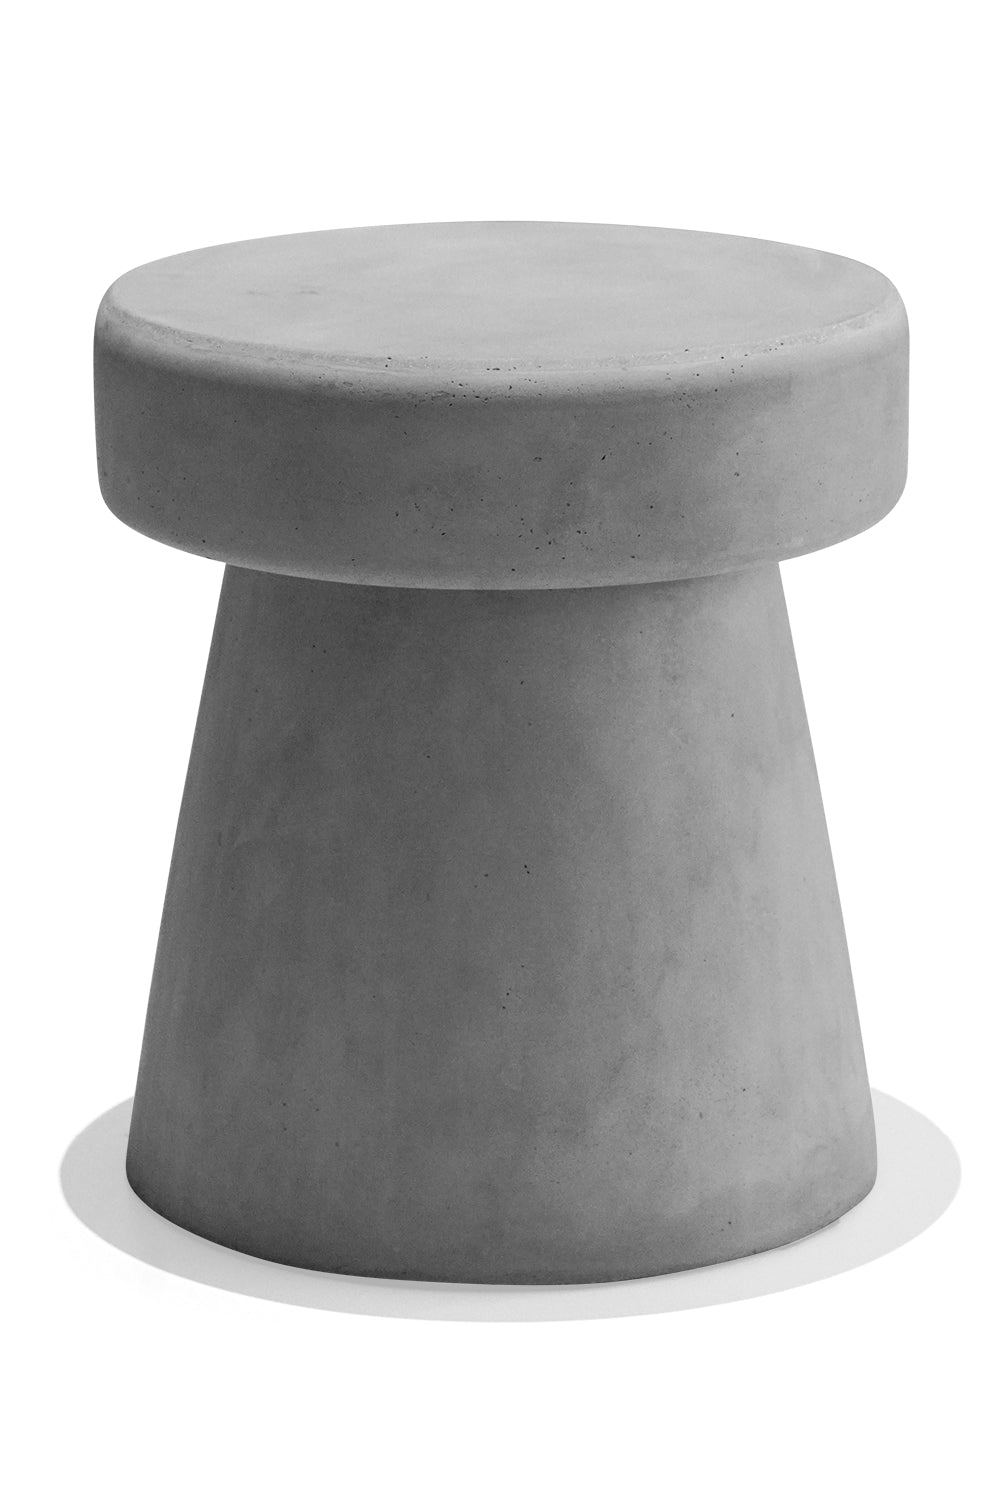 AVALON stool